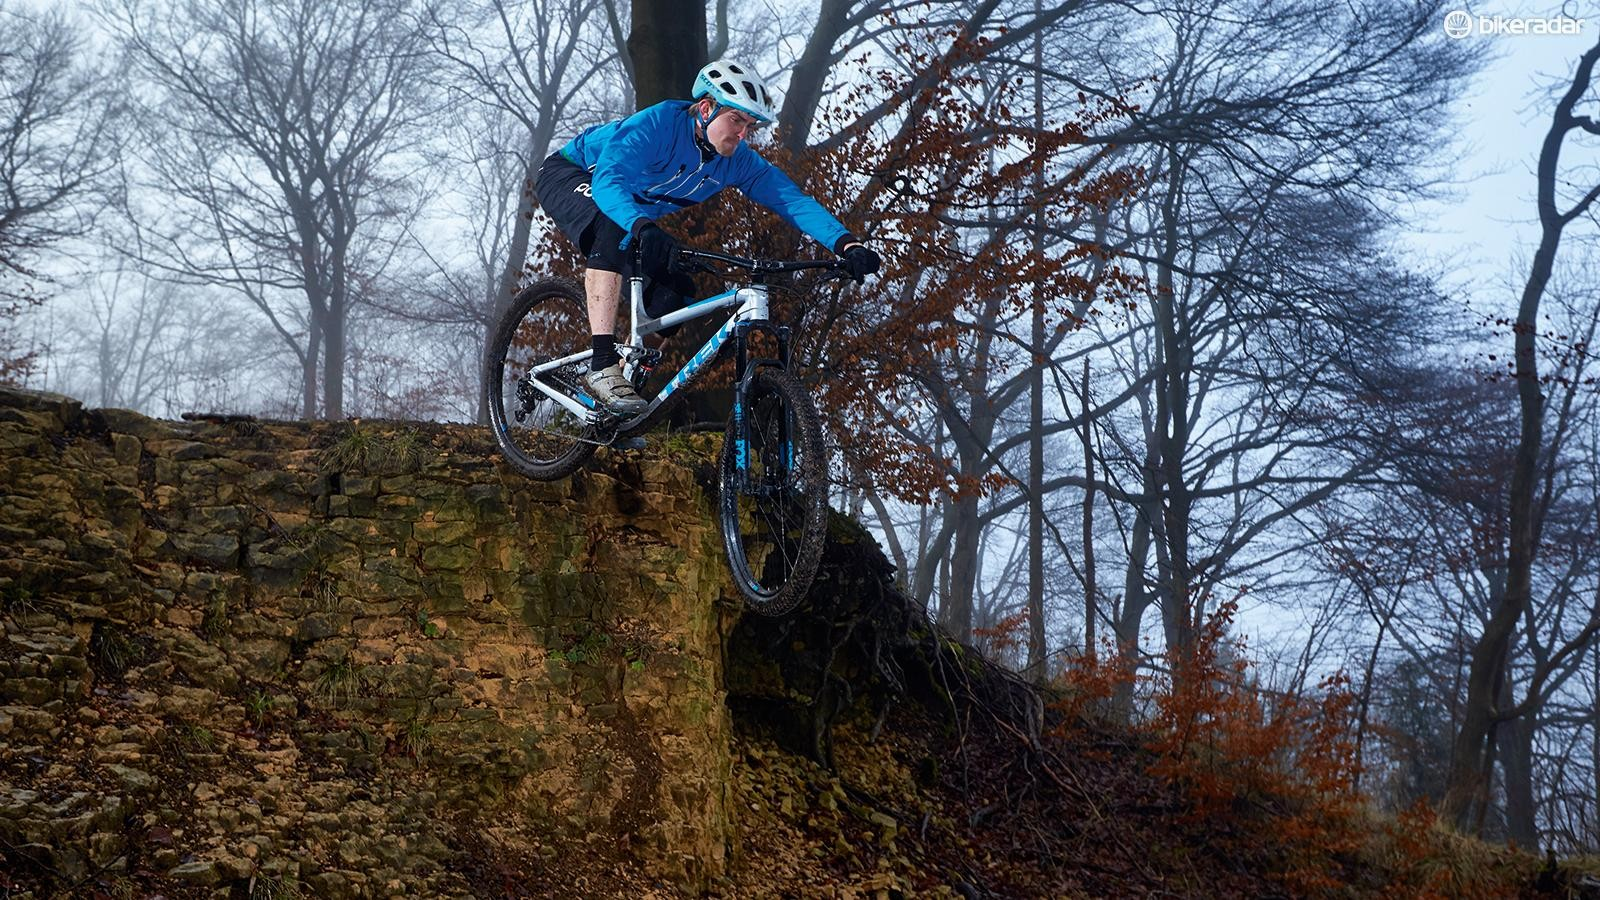 Trek's RE:aktiv damping tune resists pedalling forces but opens up to absorb big bumps